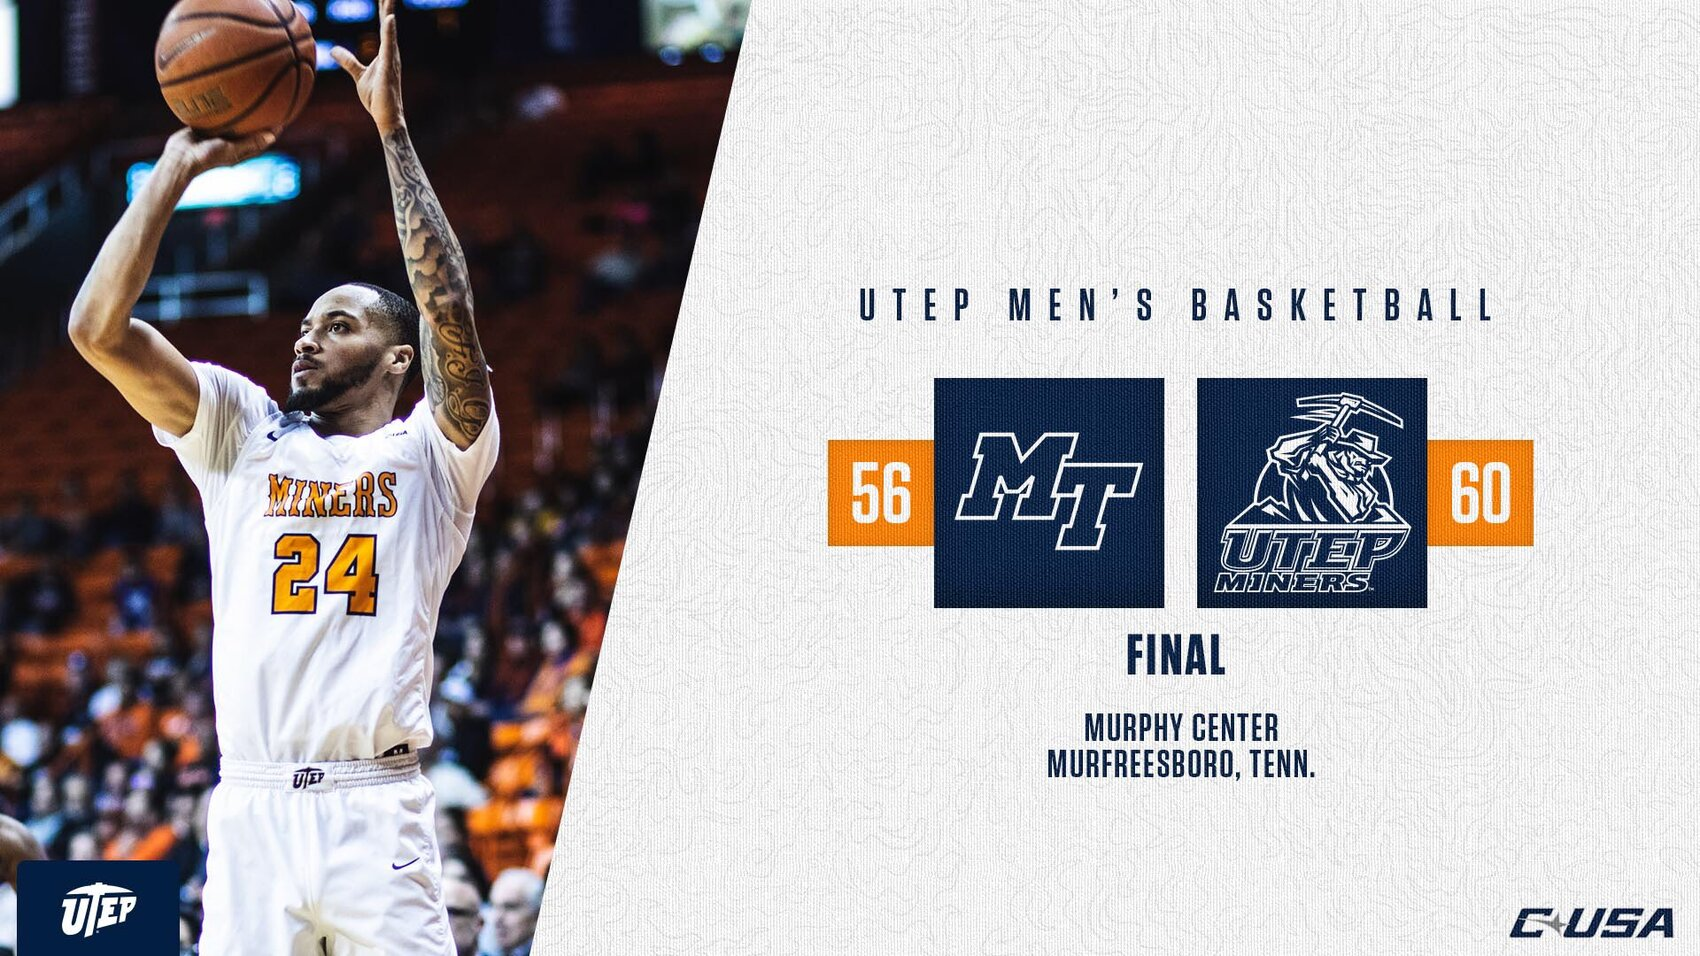 UTEP-Middle Tennessee